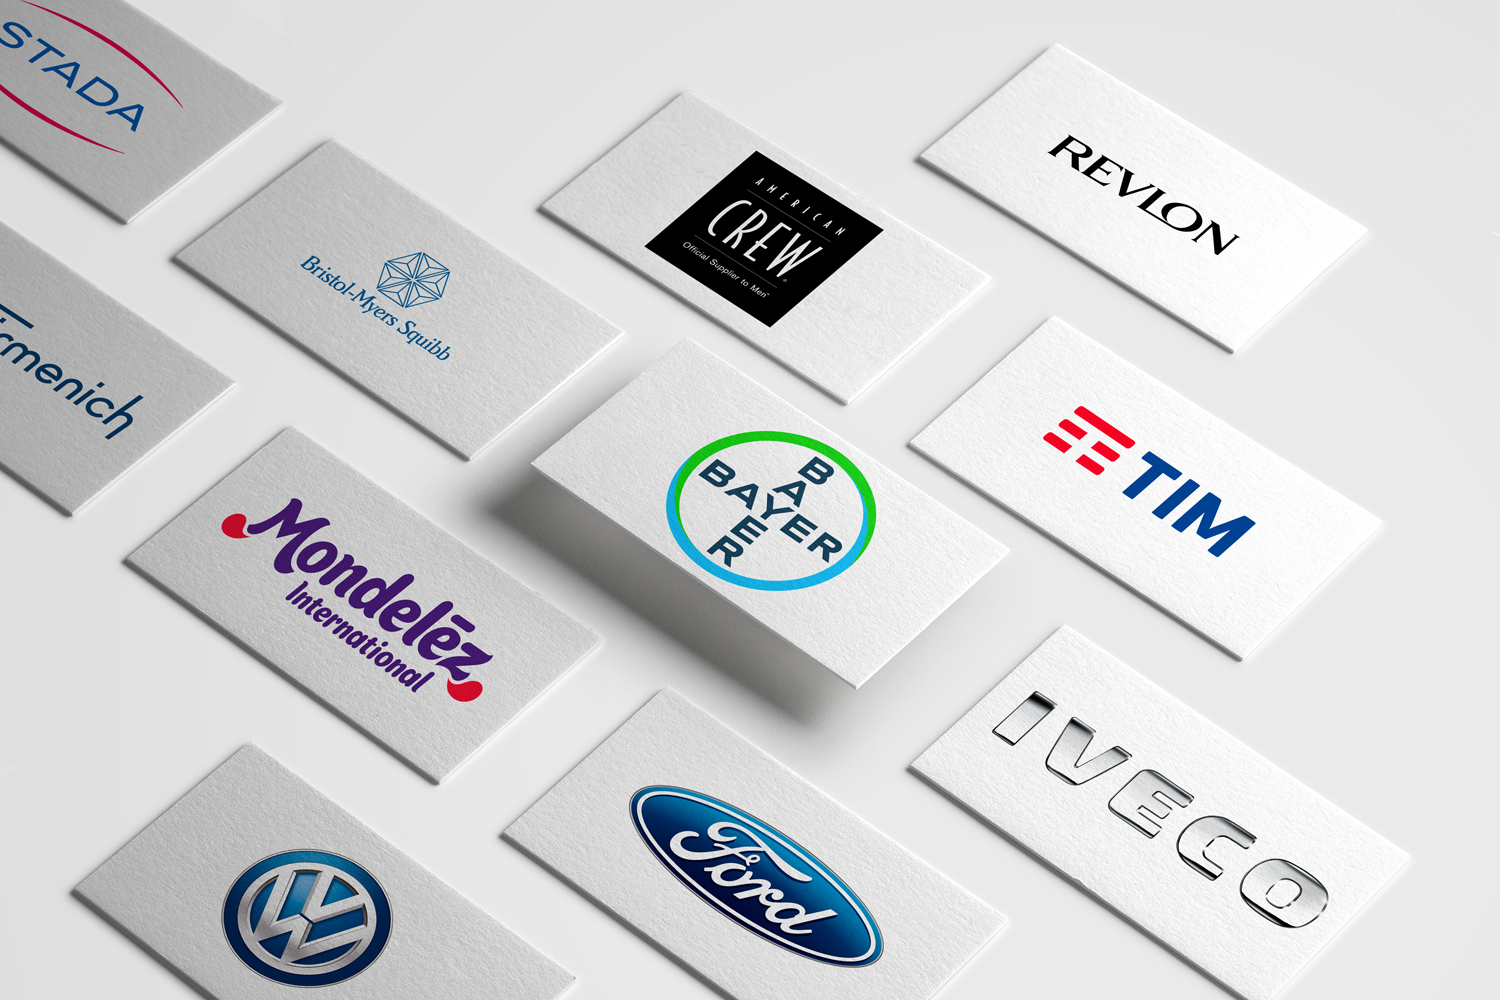 POWER POINT PRESENTATIONS UP TO YOU STUDIO EVENTS & CONFERENCES GRAPHIC DESIGN BRAND IDENTITY